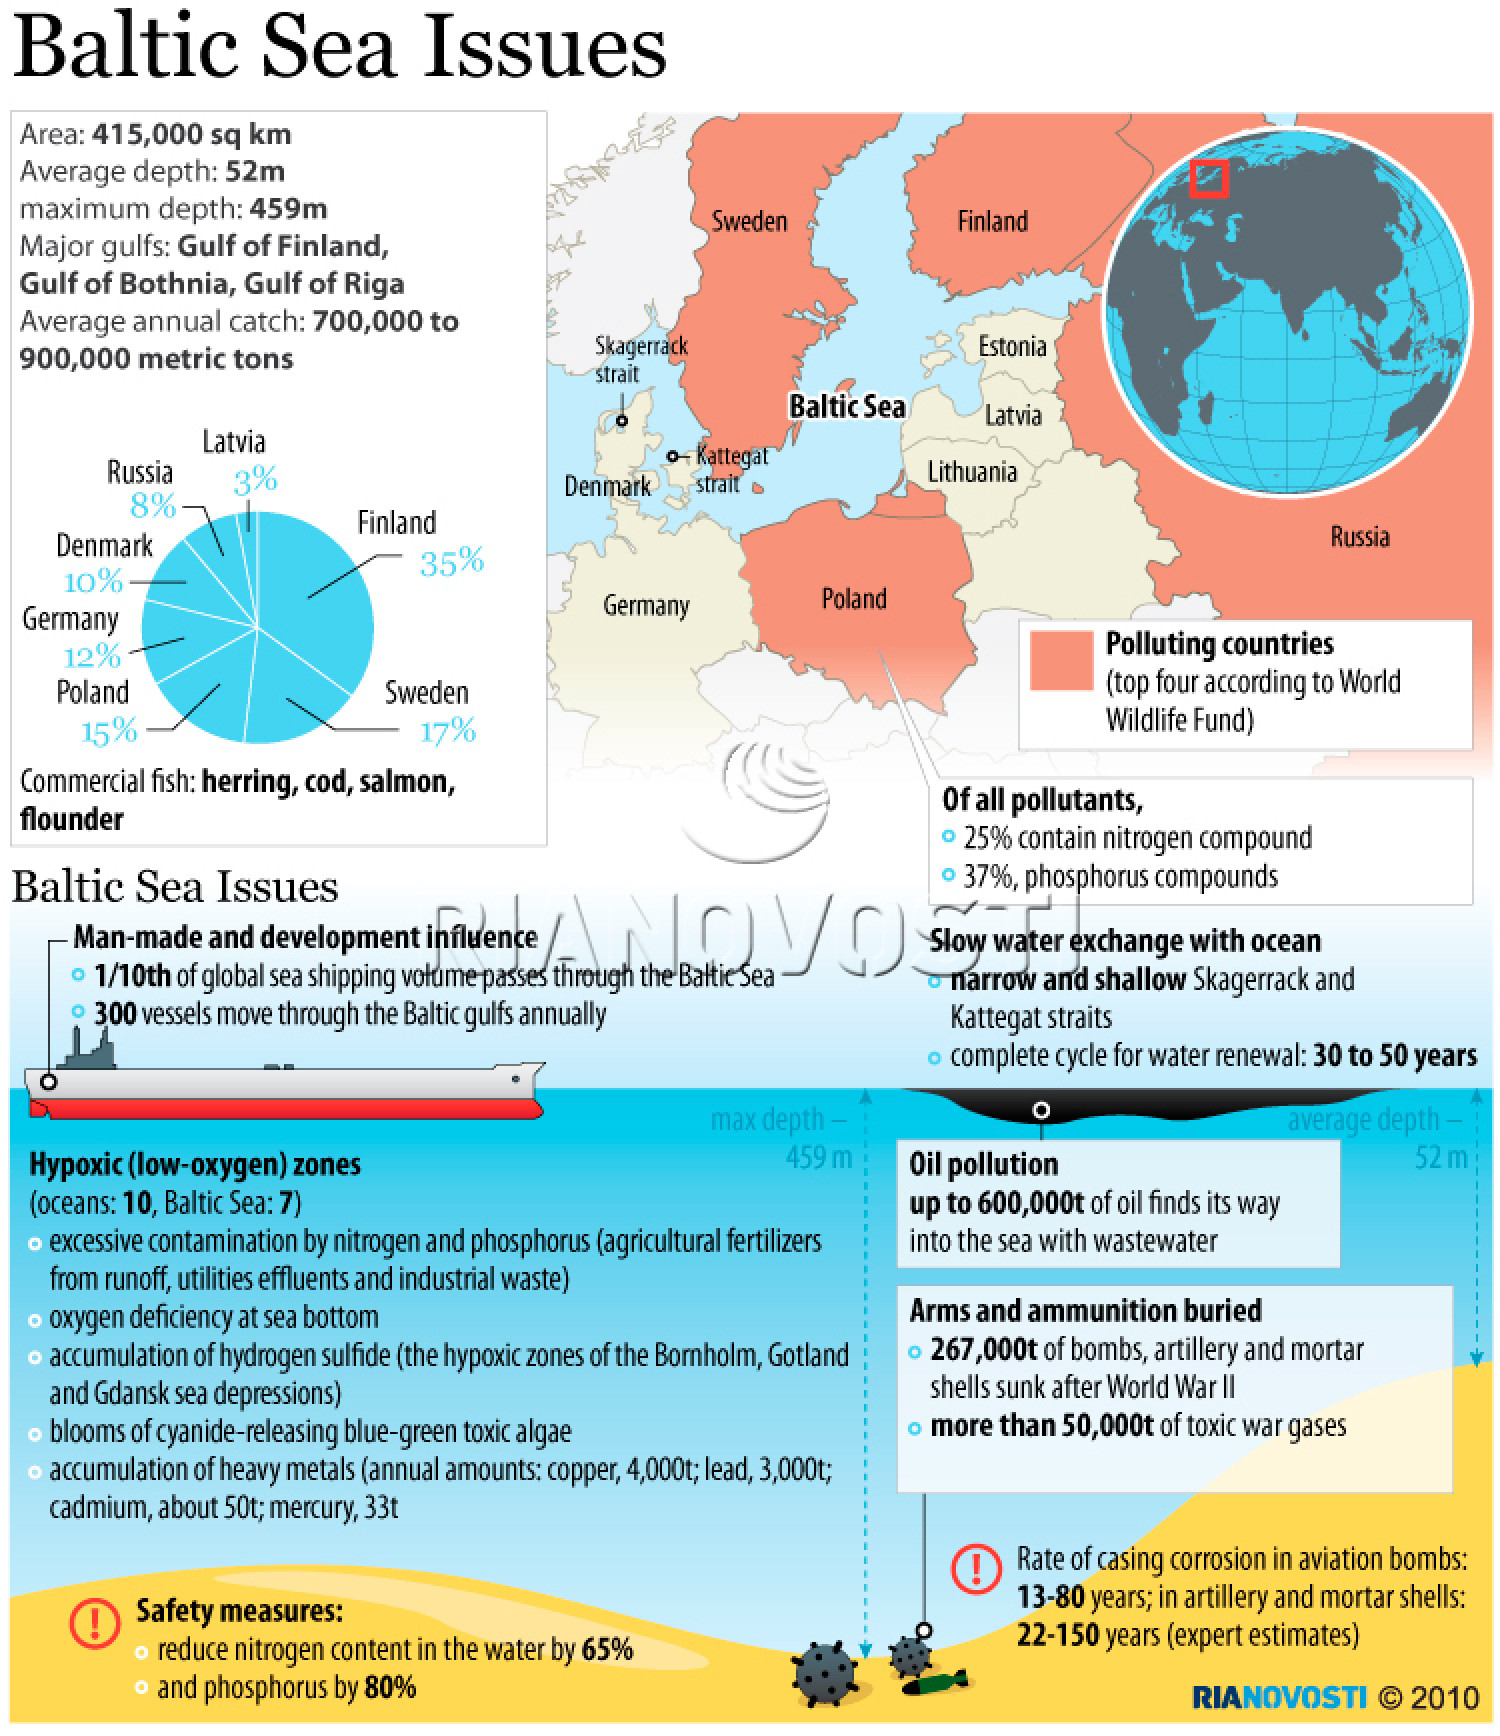 Baltic Sea Issues Infographic